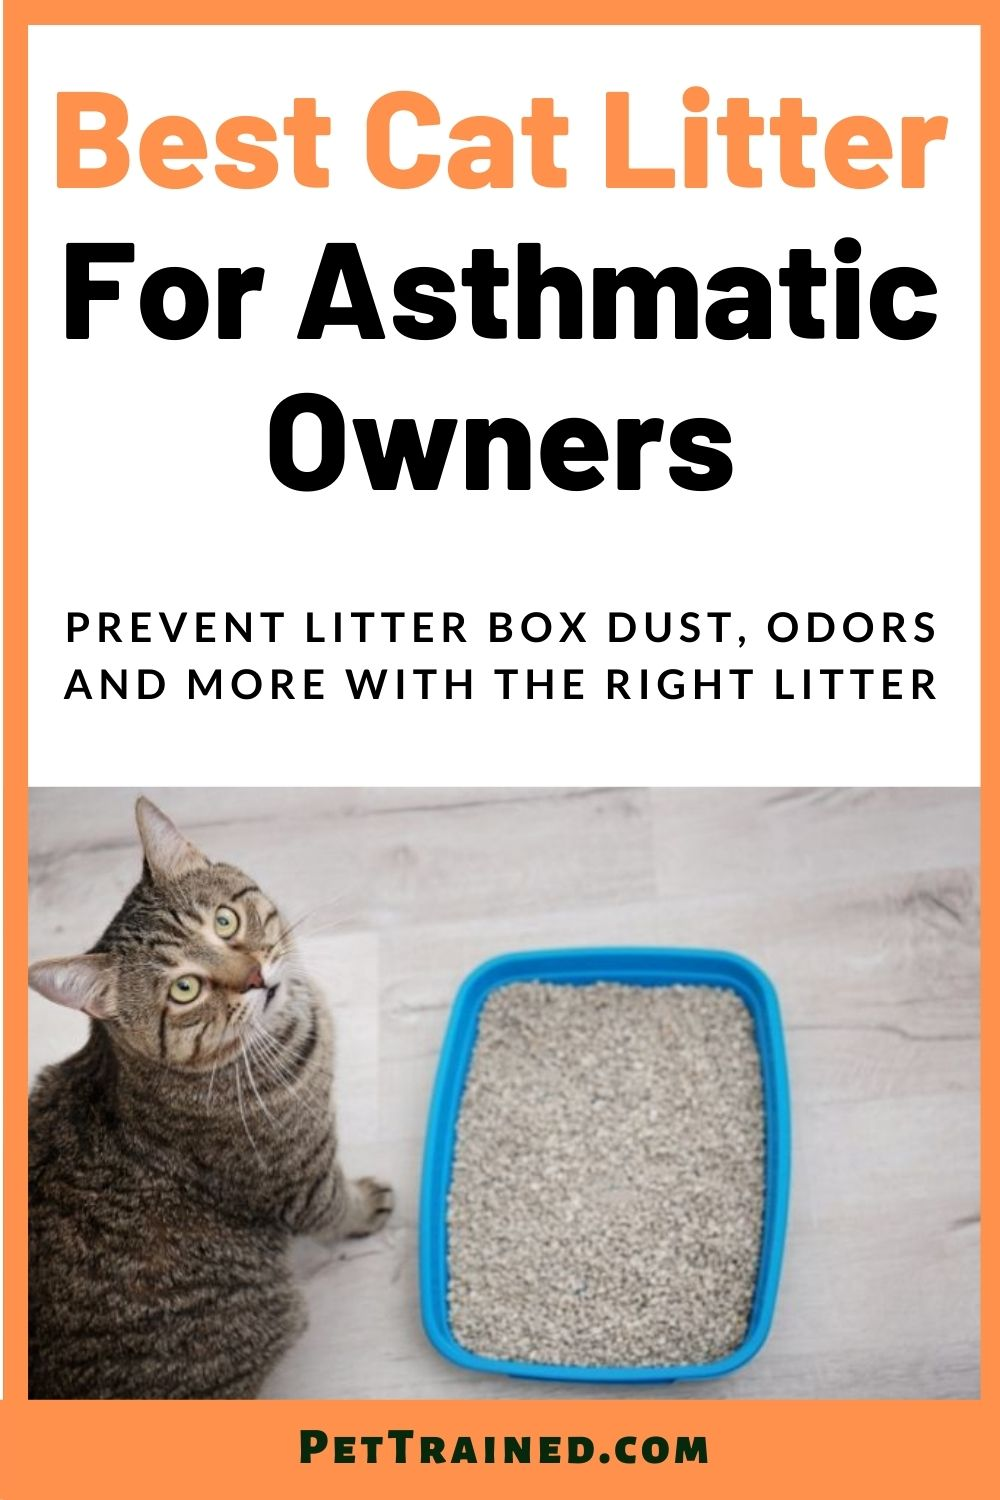 Best cat litter for cat owners with asthma